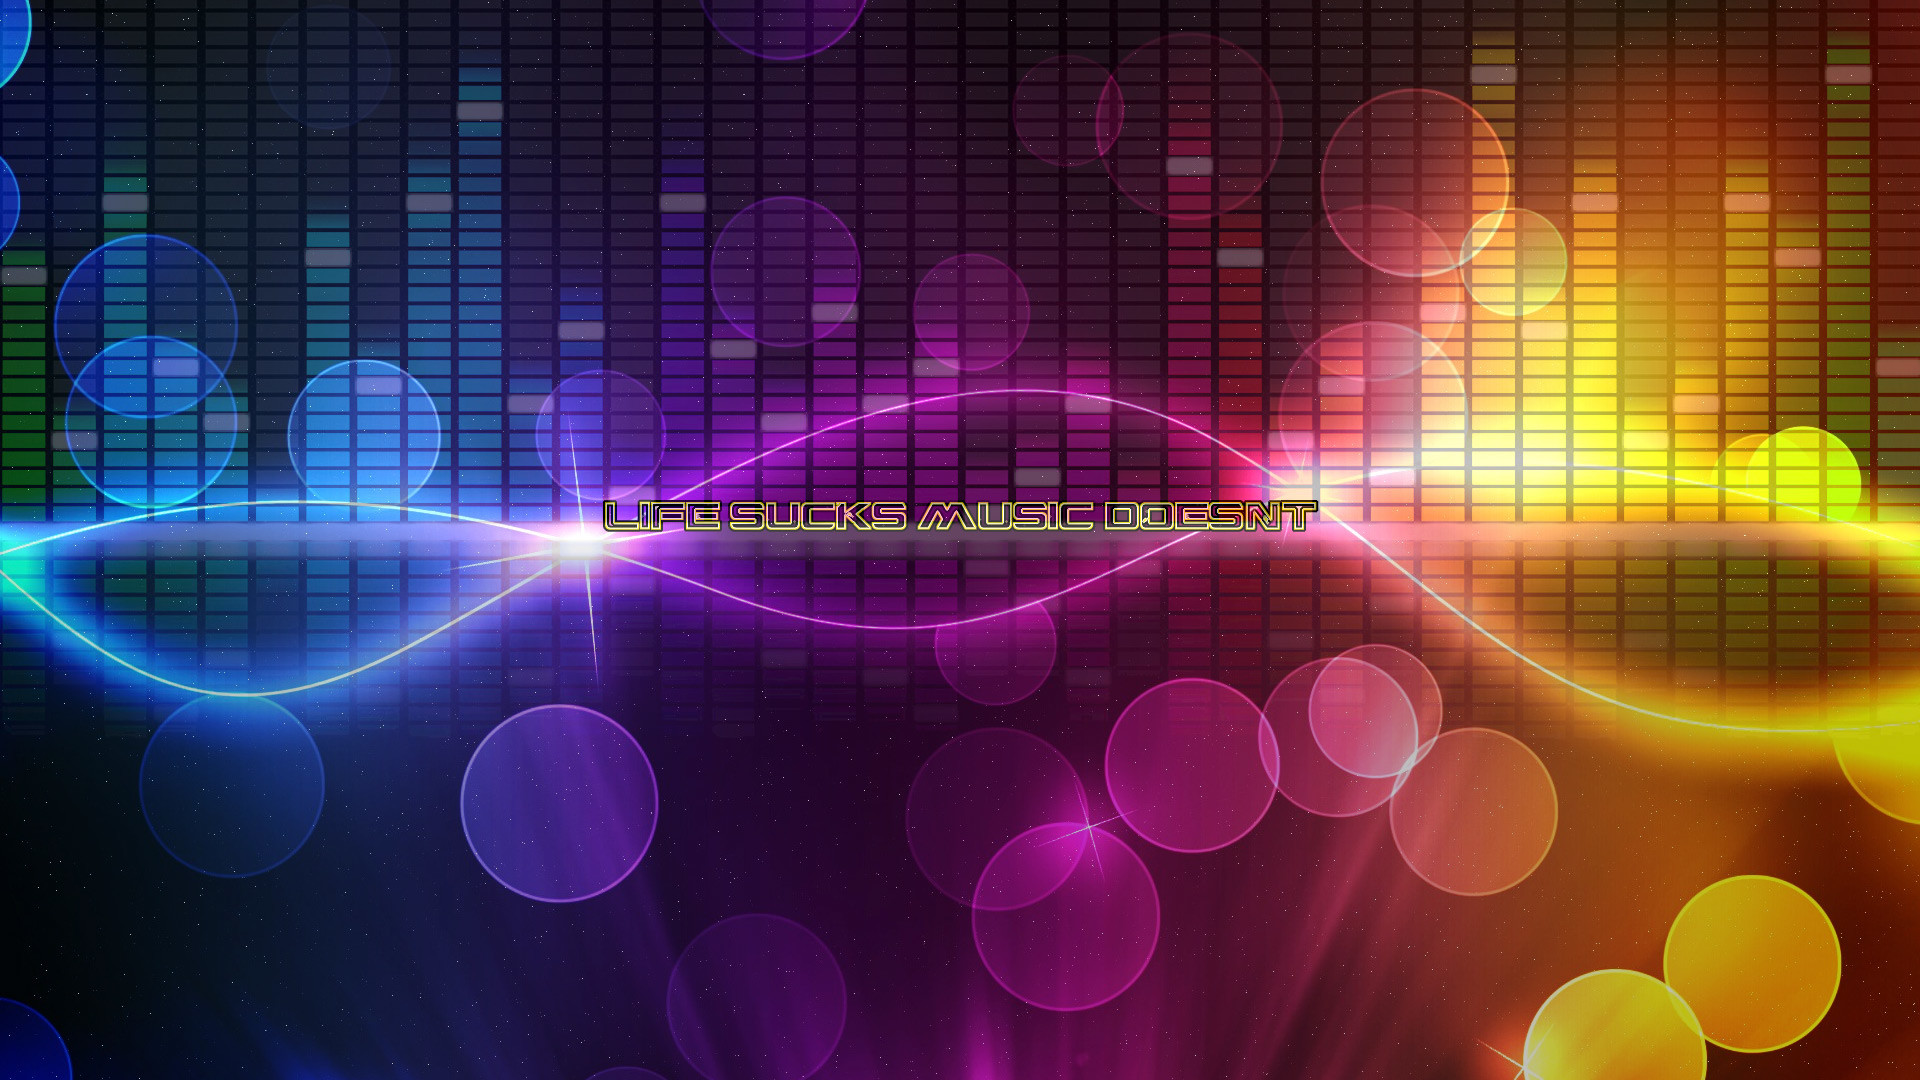 Put Some Music on Your Desktop With These Wallpapers